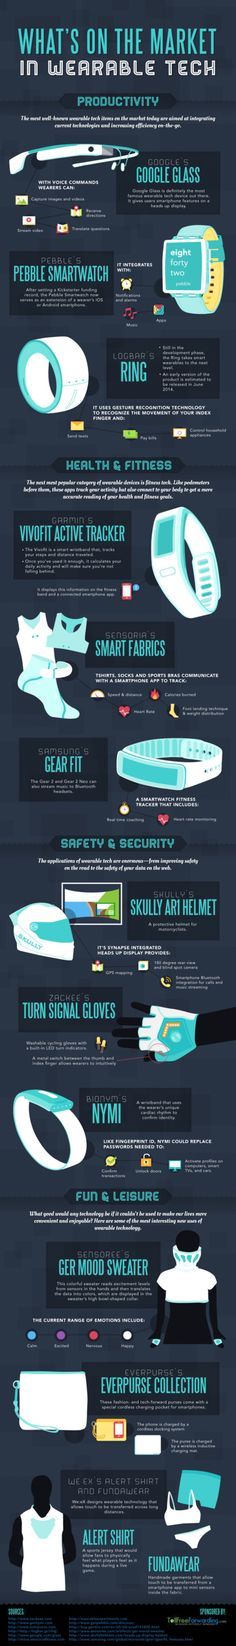 What's on the Market in Wearable Tech   #infographic #mobile #wearables